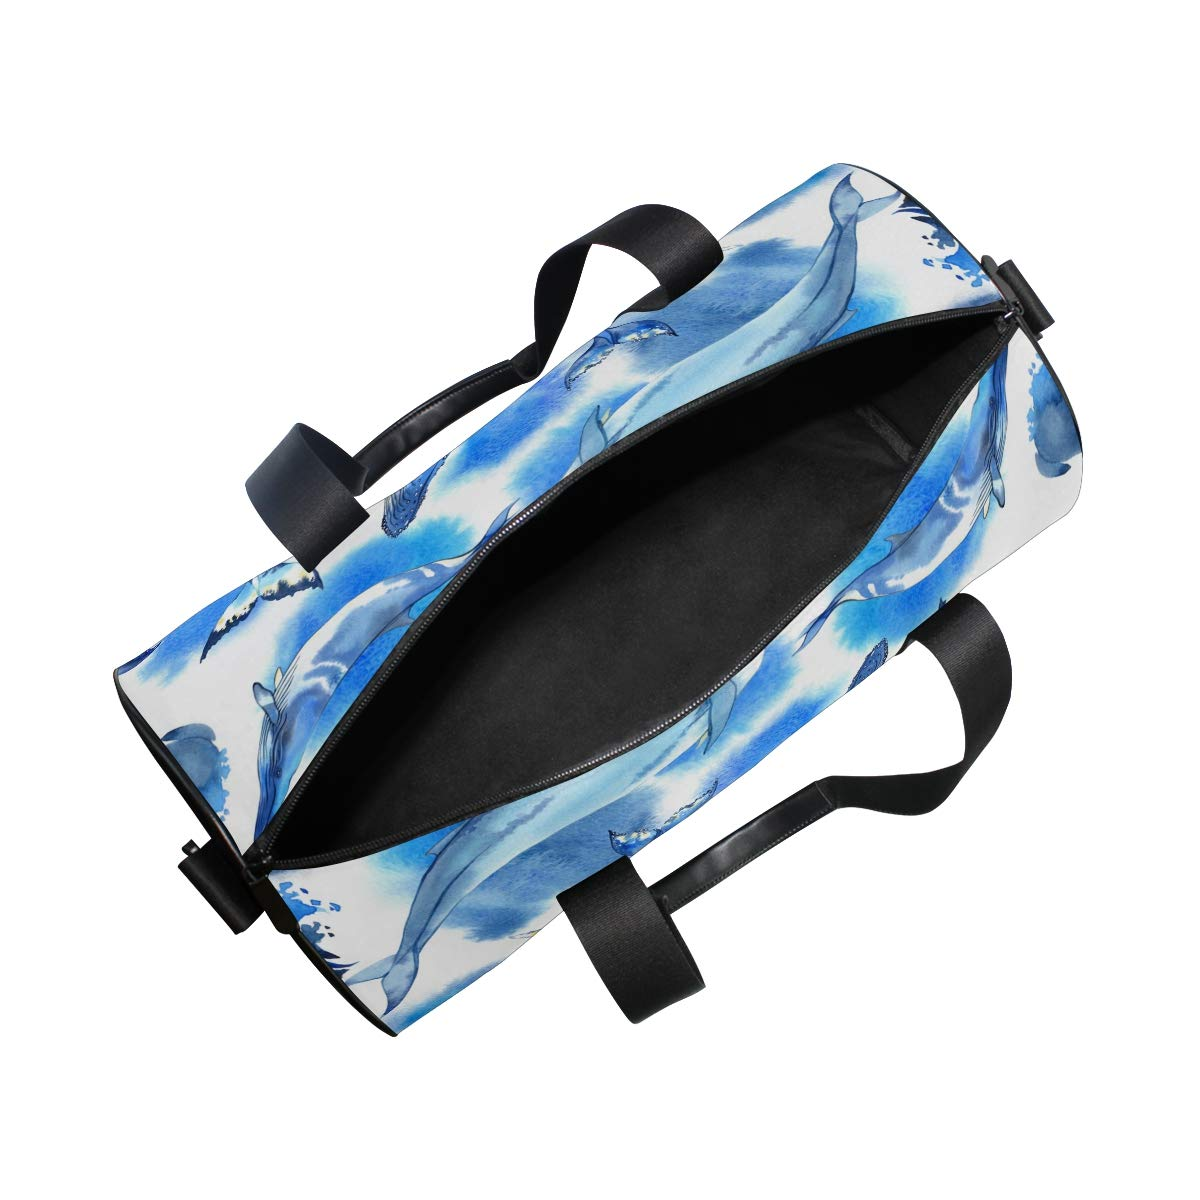 Sea Whale Yoga Sports Gym Duffle Bags Tote Sling Travel Bag Patterned Canvas with Pocket and Zipper For Men Women Bag by EVERUI (Image #5)